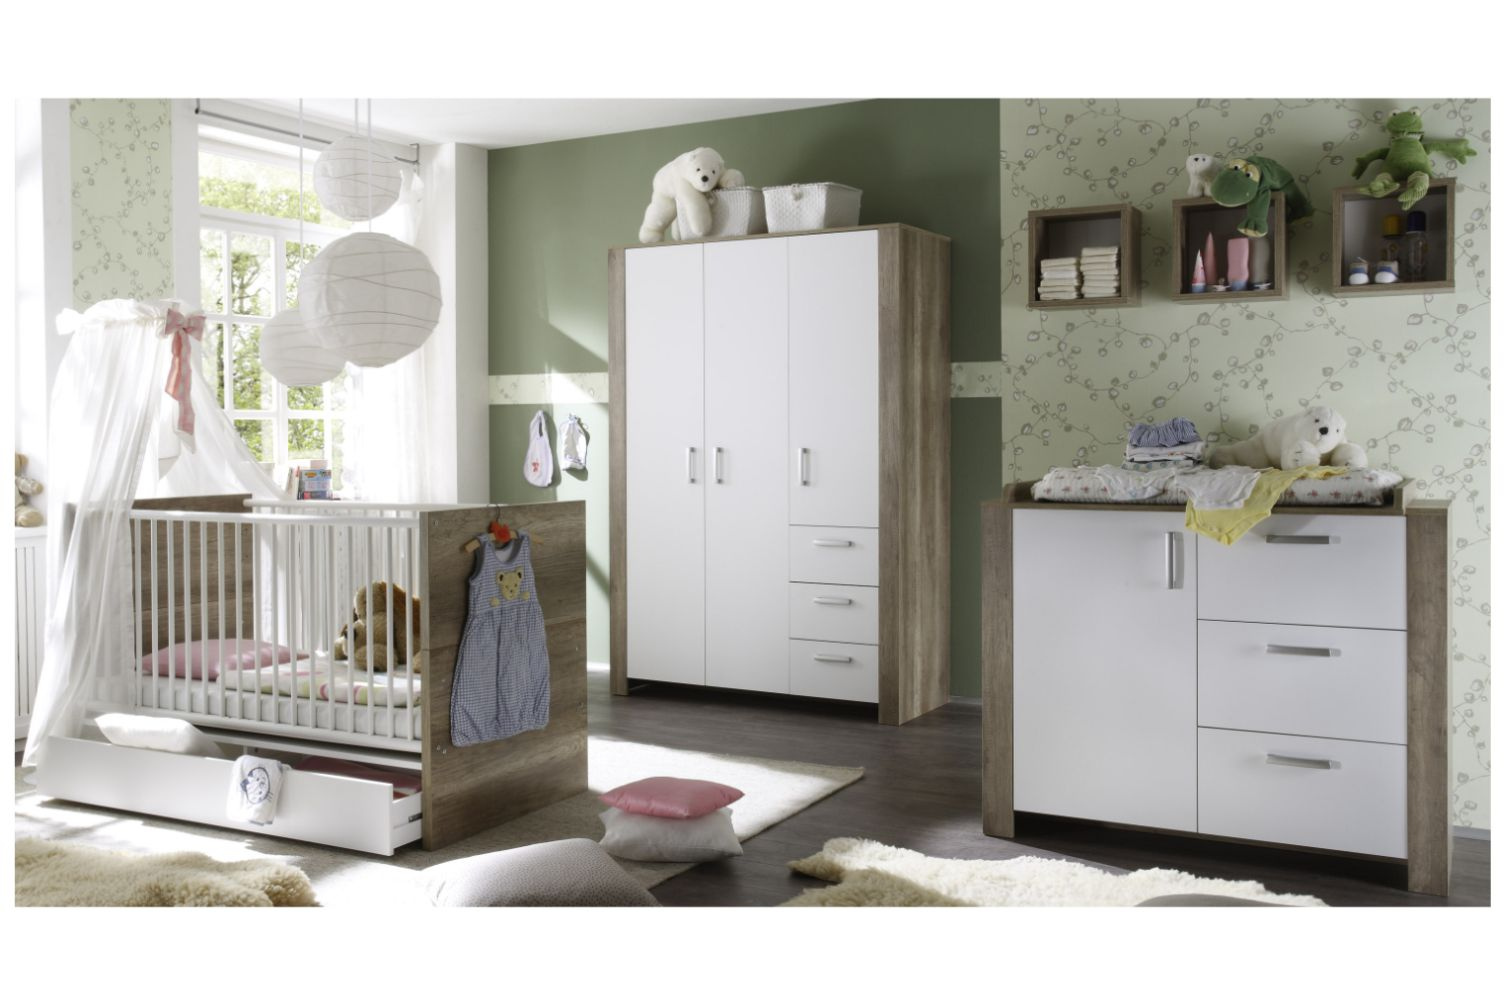 baby kinderzimmer komplett baby kinderzimmer komplett. Black Bedroom Furniture Sets. Home Design Ideas